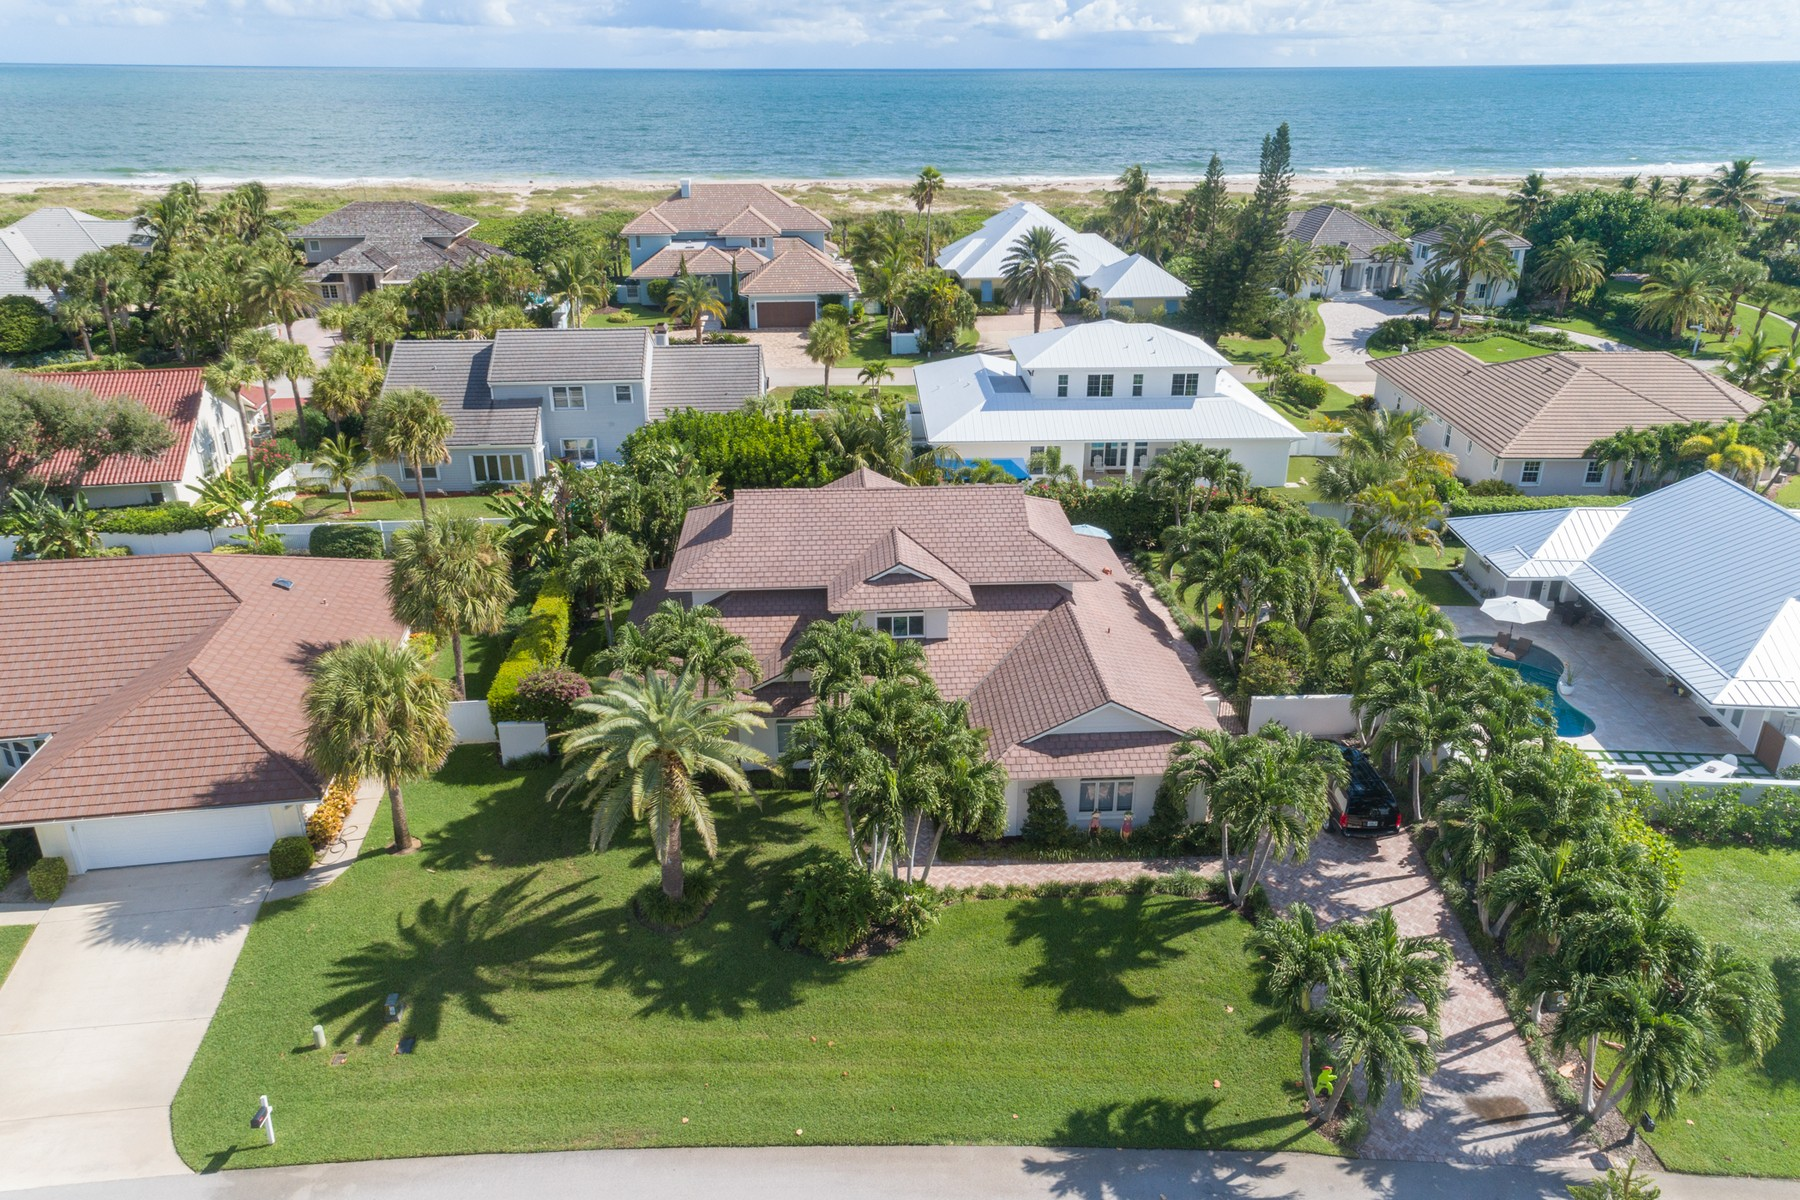 Eensgezinswoning voor Verkoop op This Captivating Castaway Cove Custom Residence Awaits You! 1220 Near Ocean Drive Vero Beach, Florida 32963 Verenigde Staten